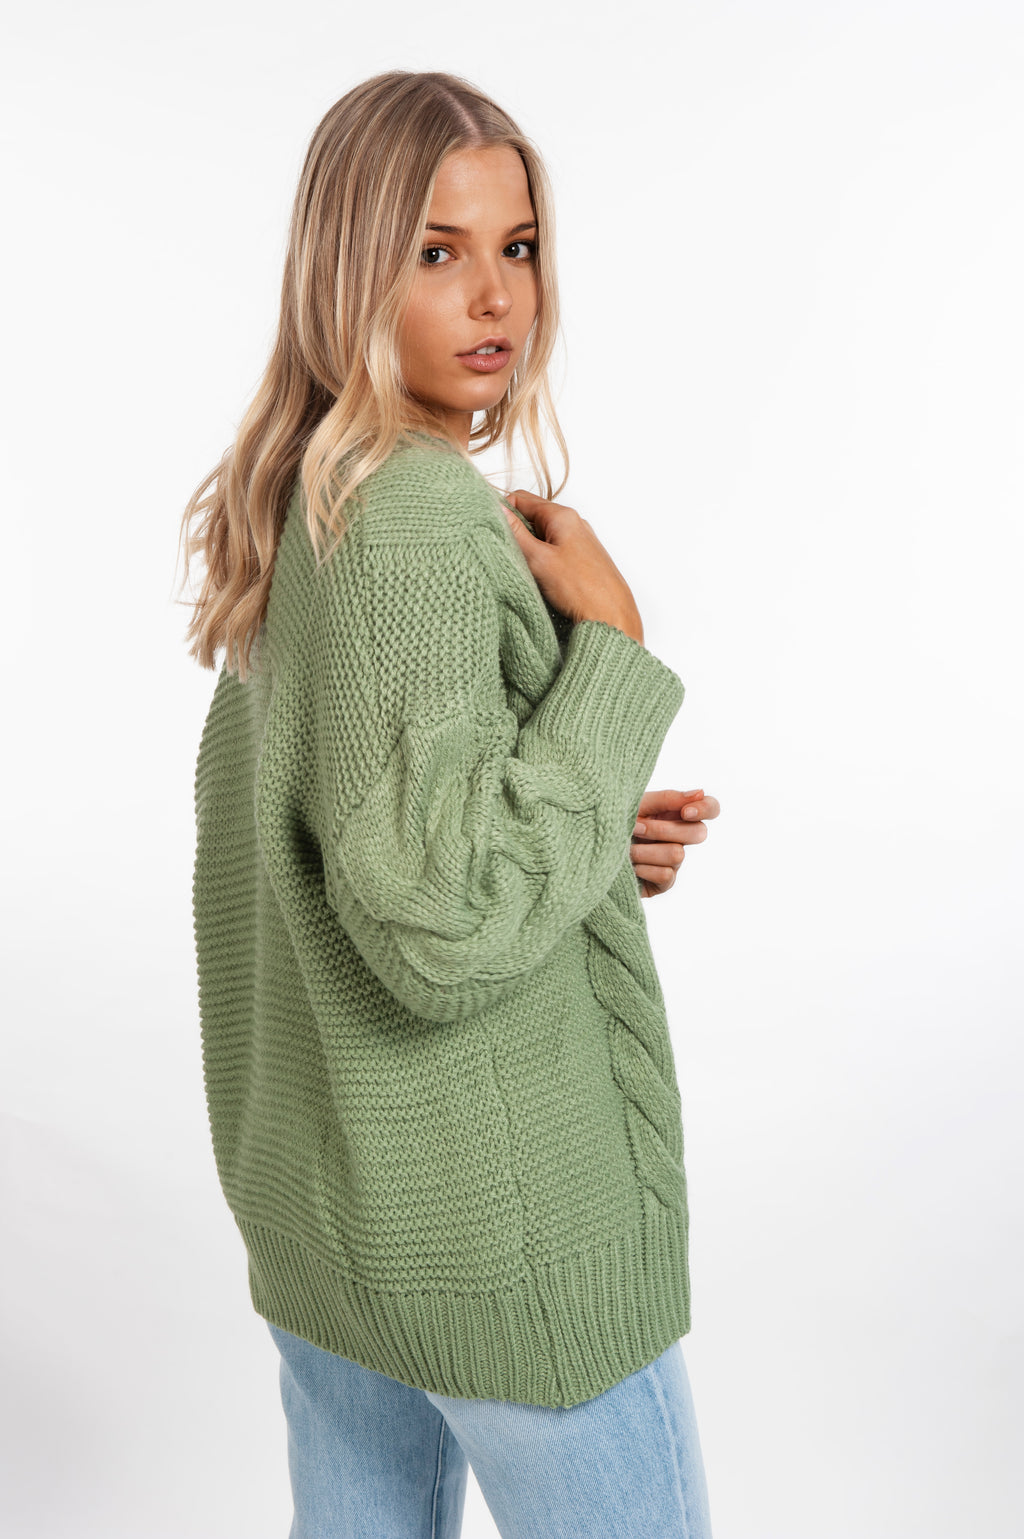 Cable Knit Cardigan - Khaki - Islandlace